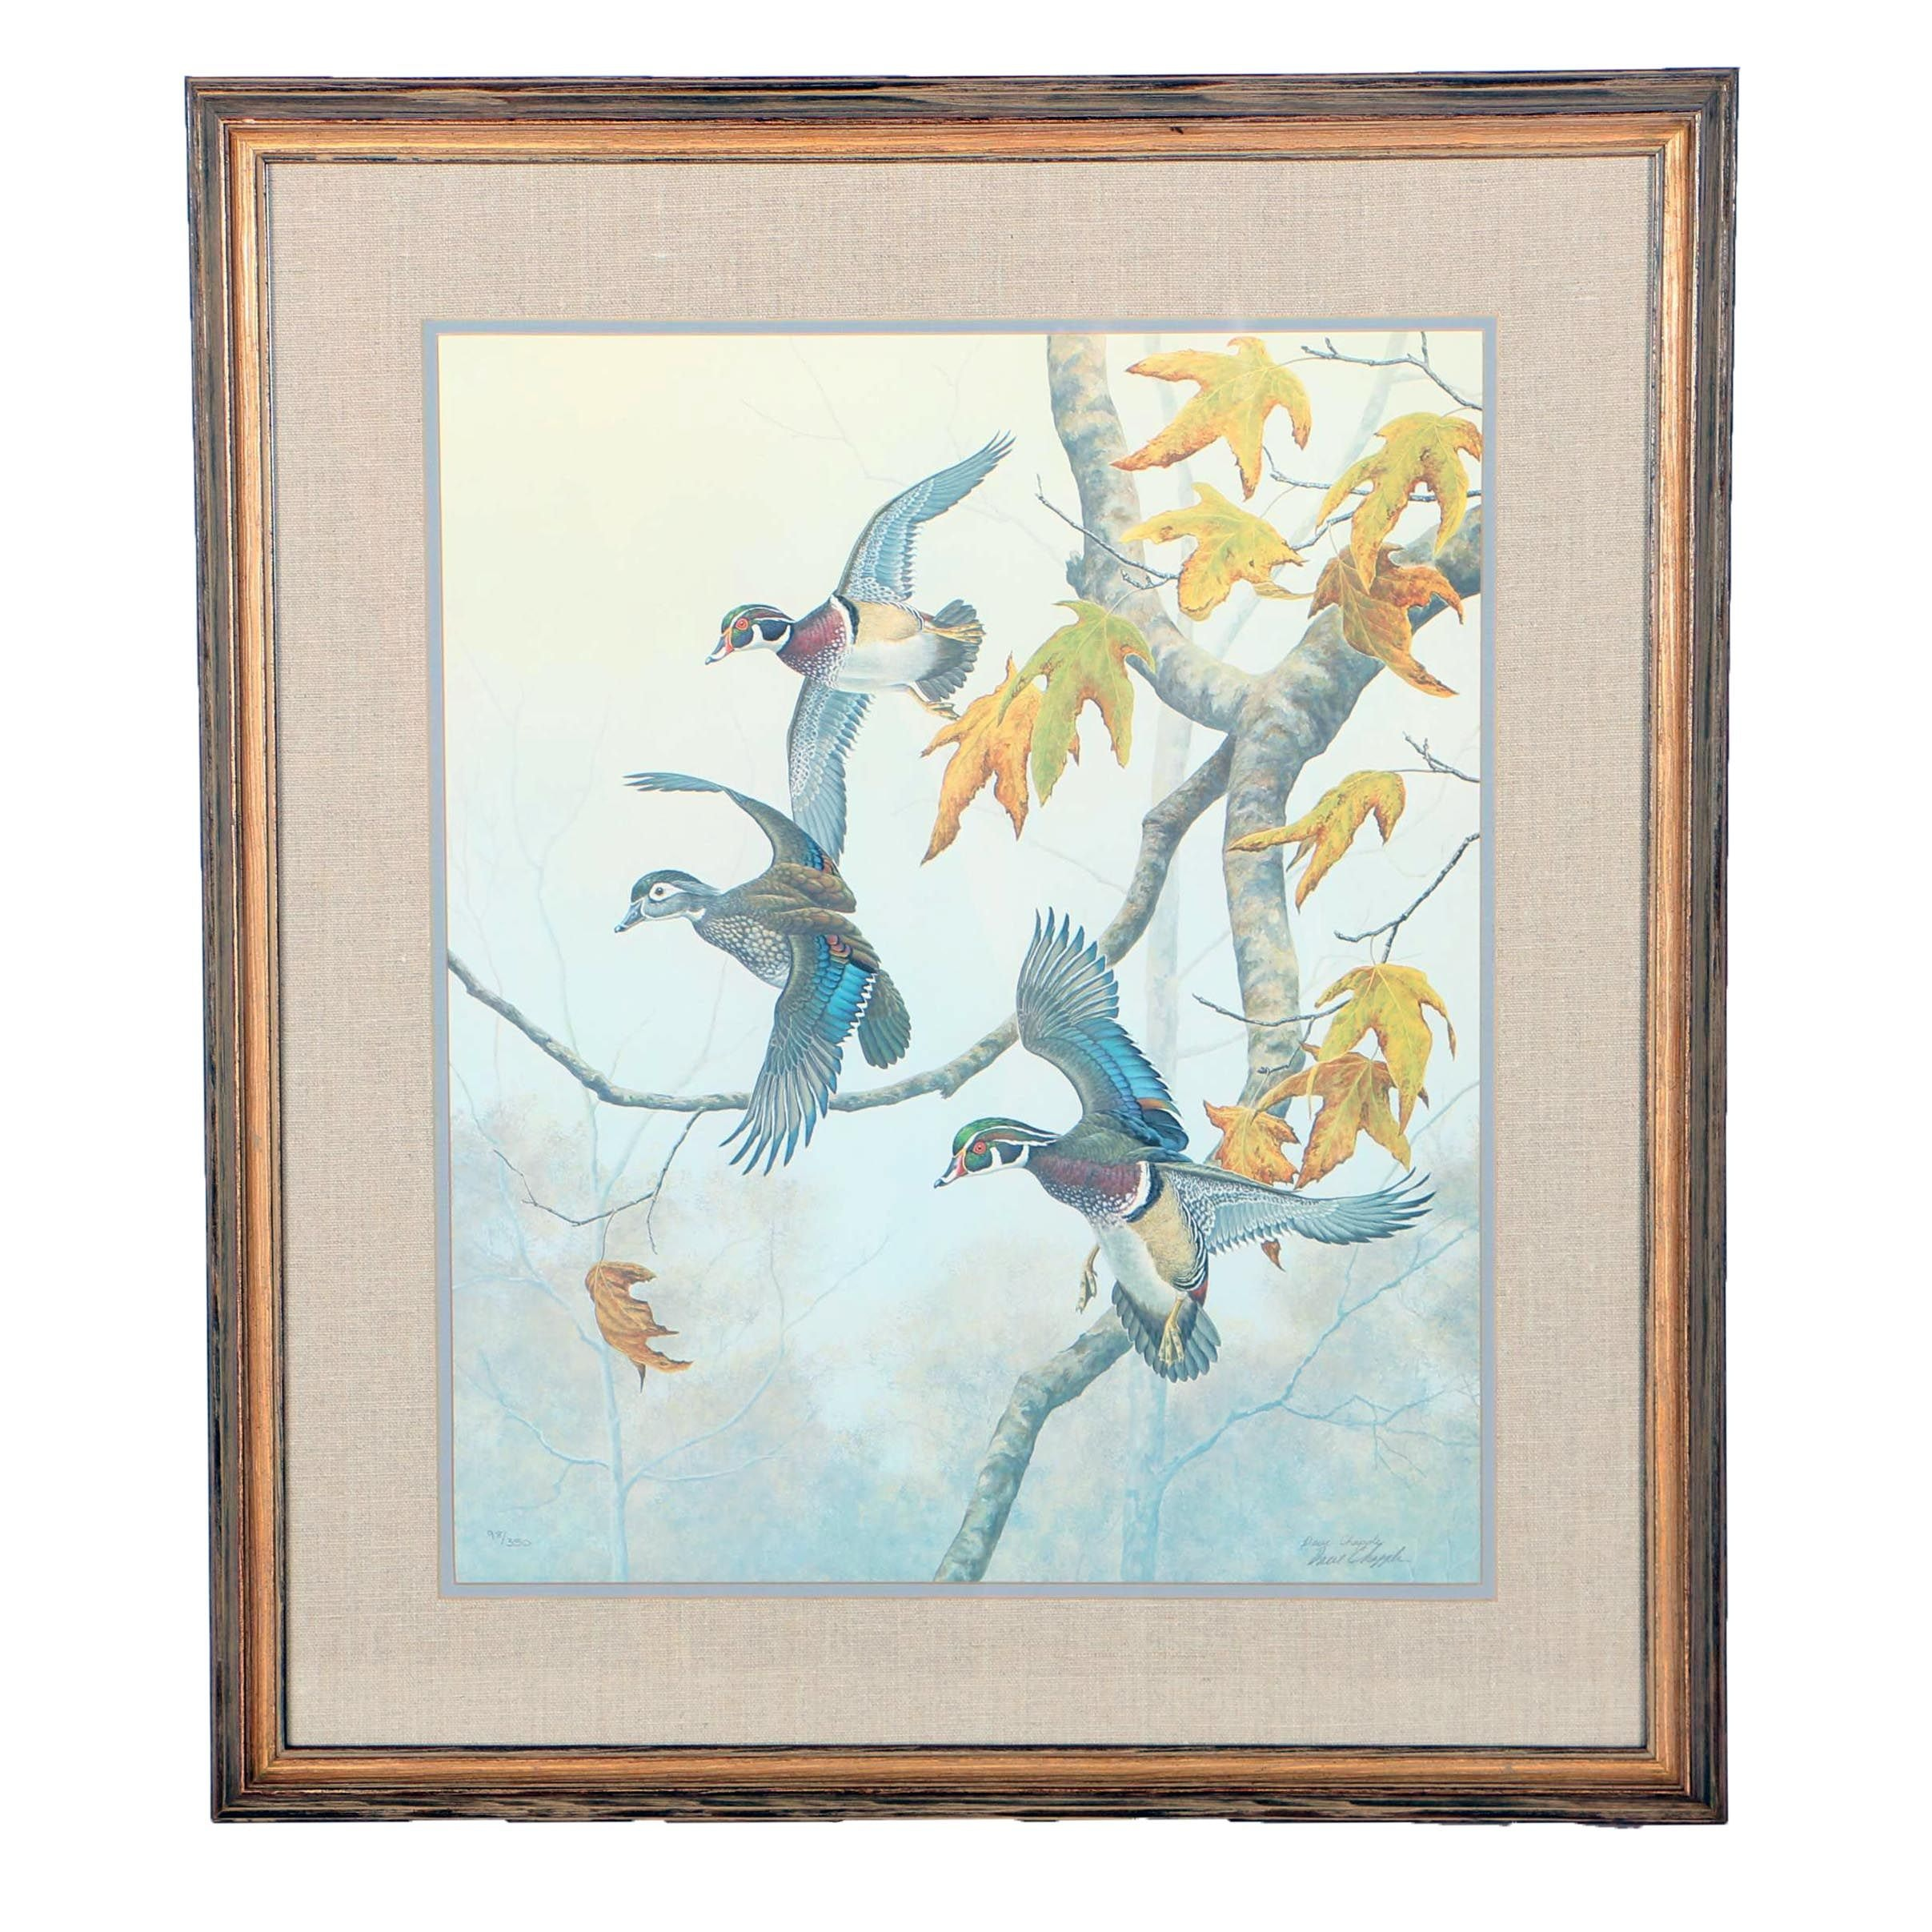 Dave Chapple Limited Edition Offset Lithograph of Ducks Descending